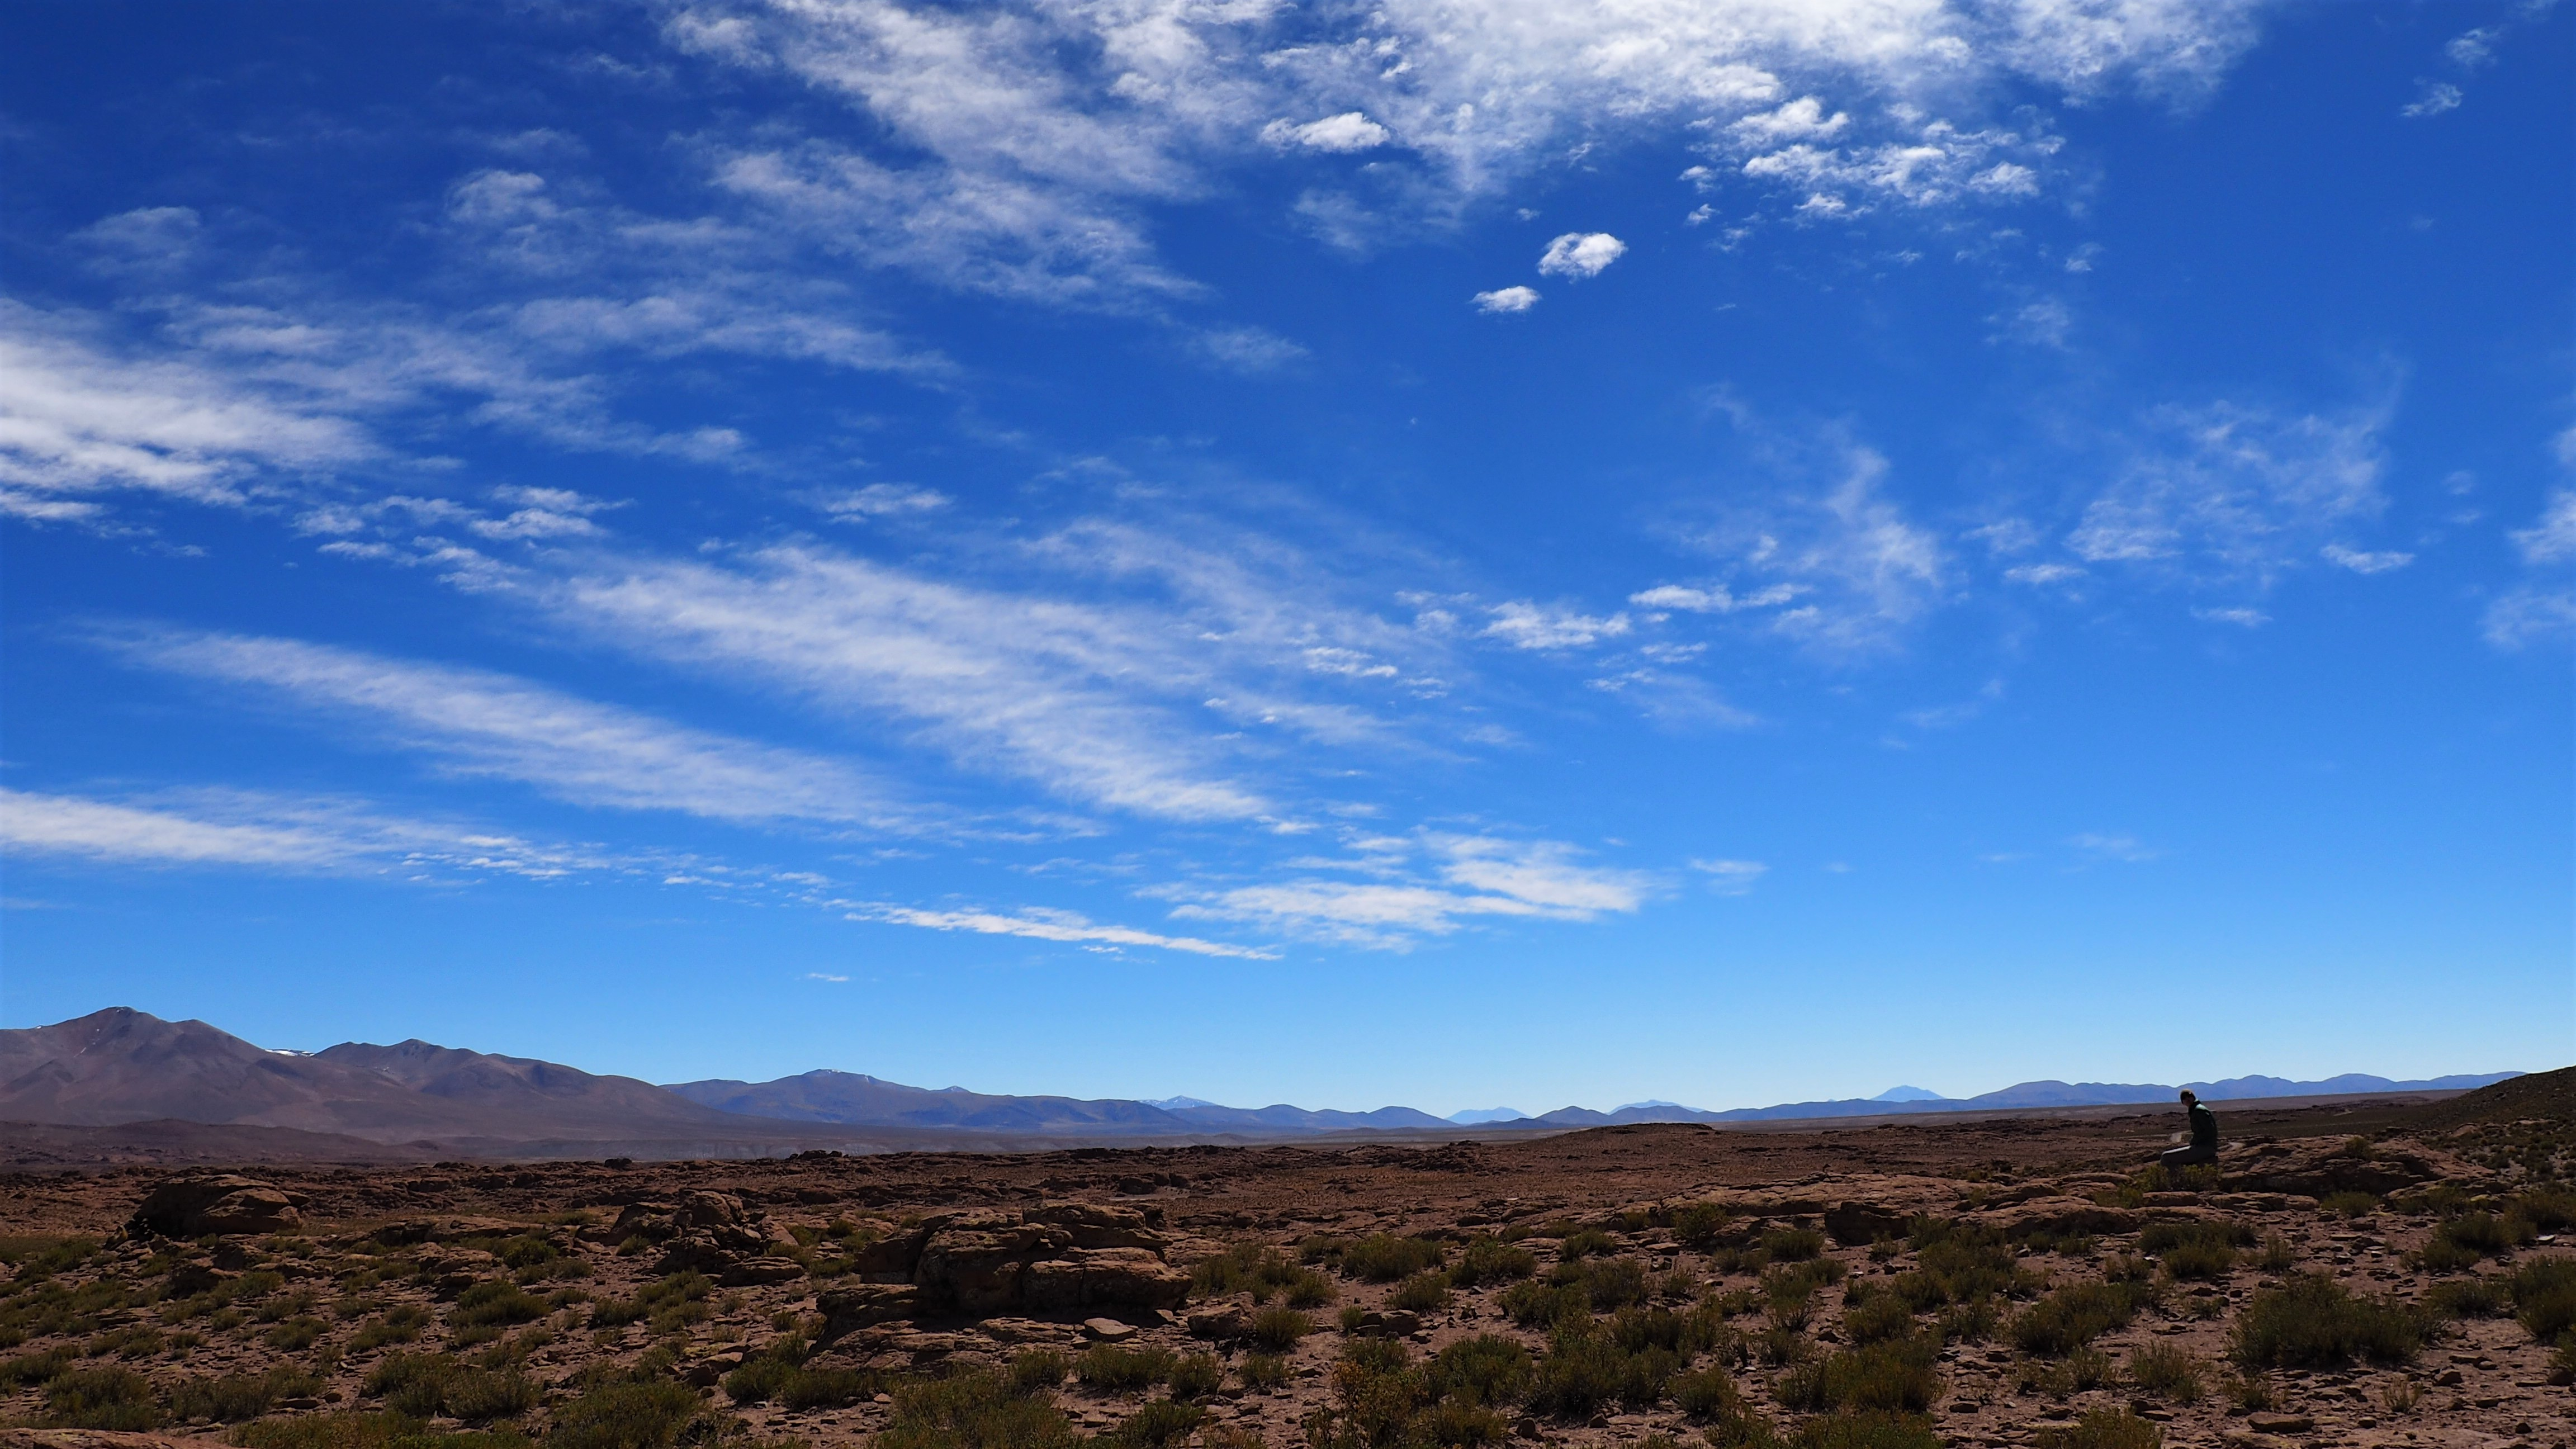 the sky over high Bolivia desert